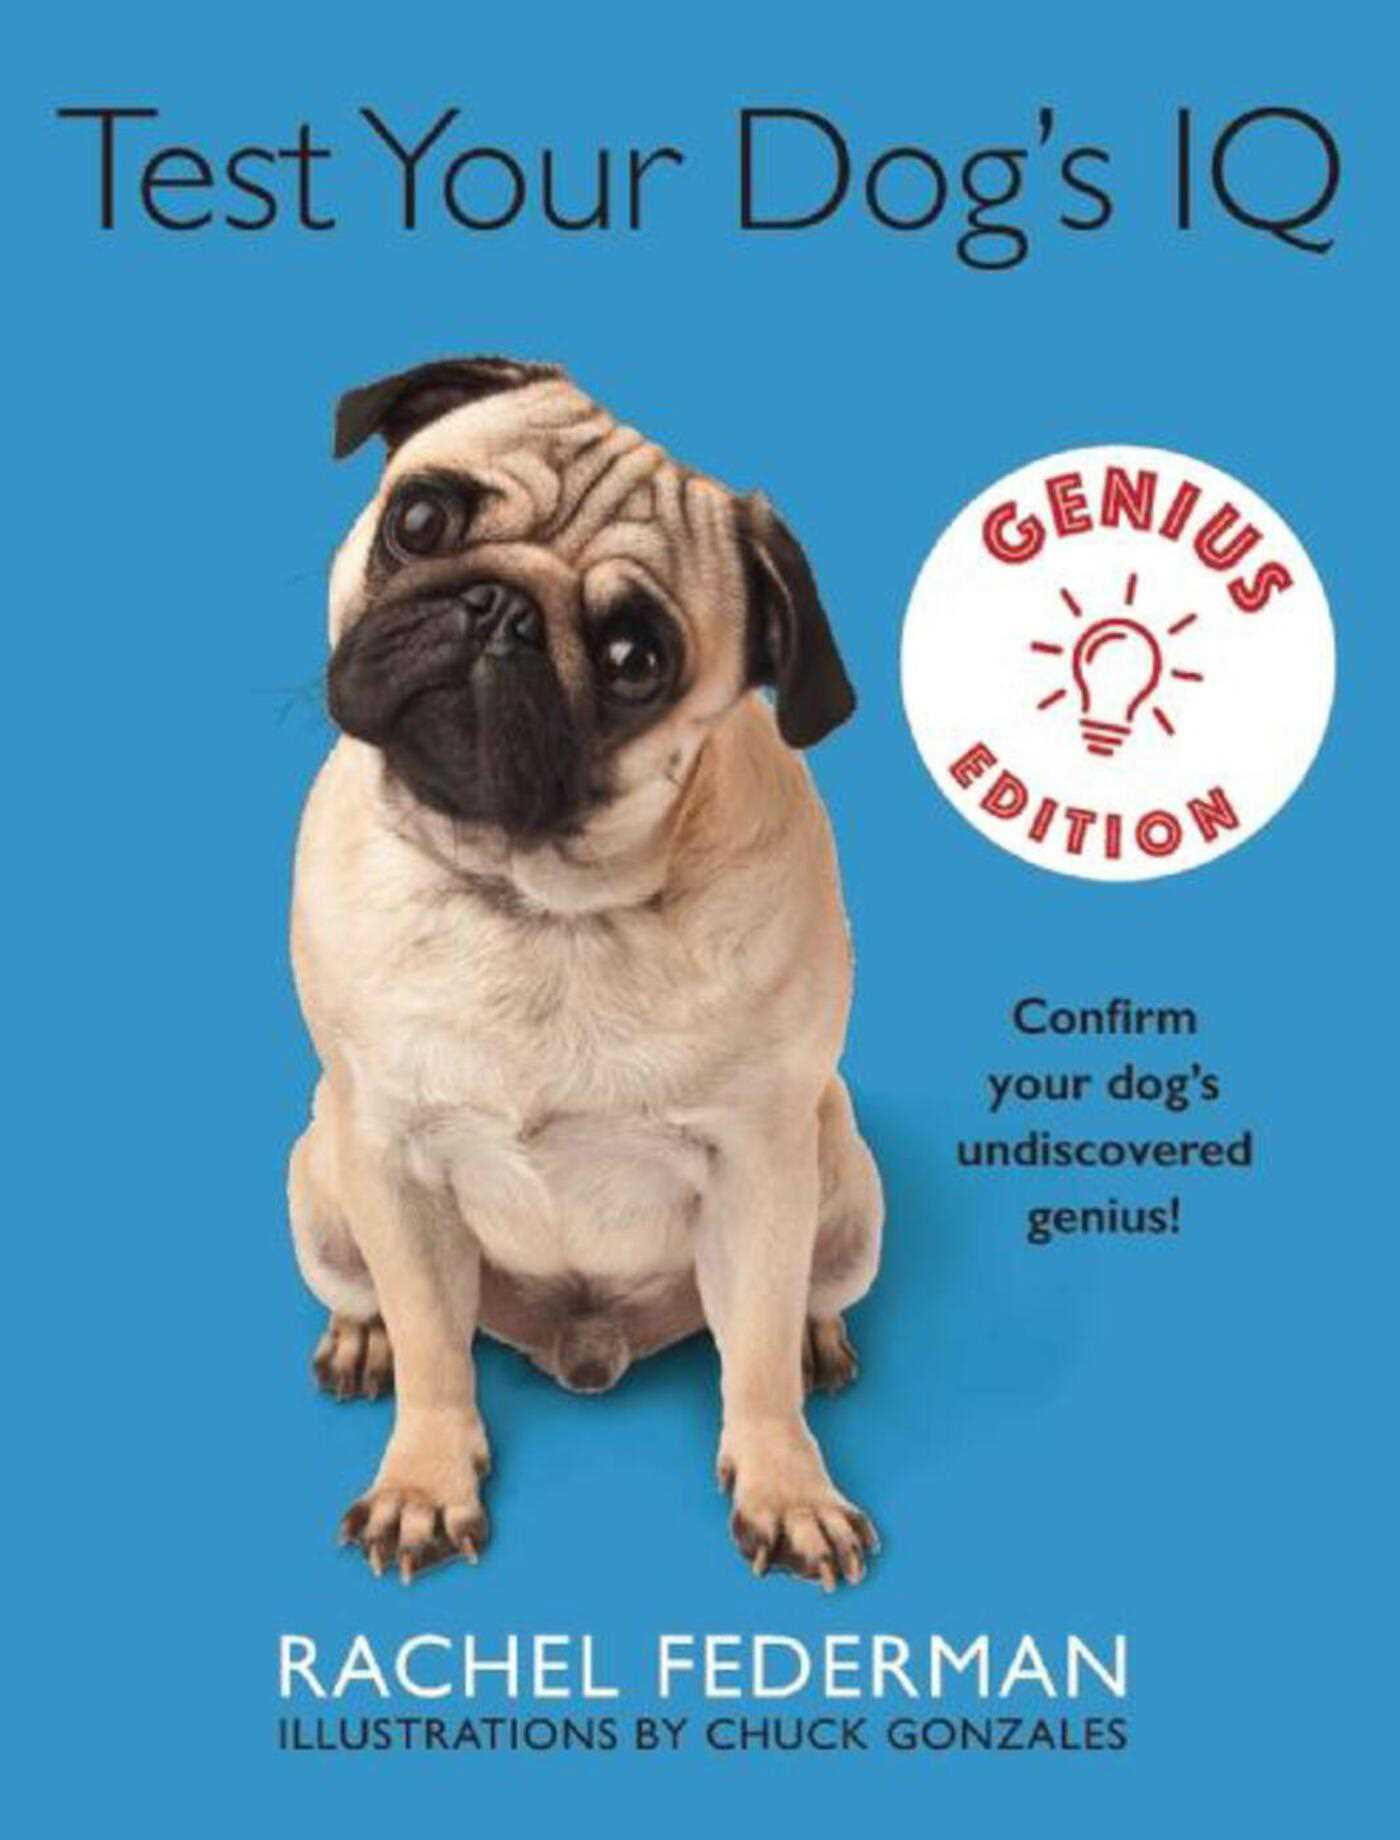 Test Your Dog's IQ Genius Edition | Book by Rachel Federman